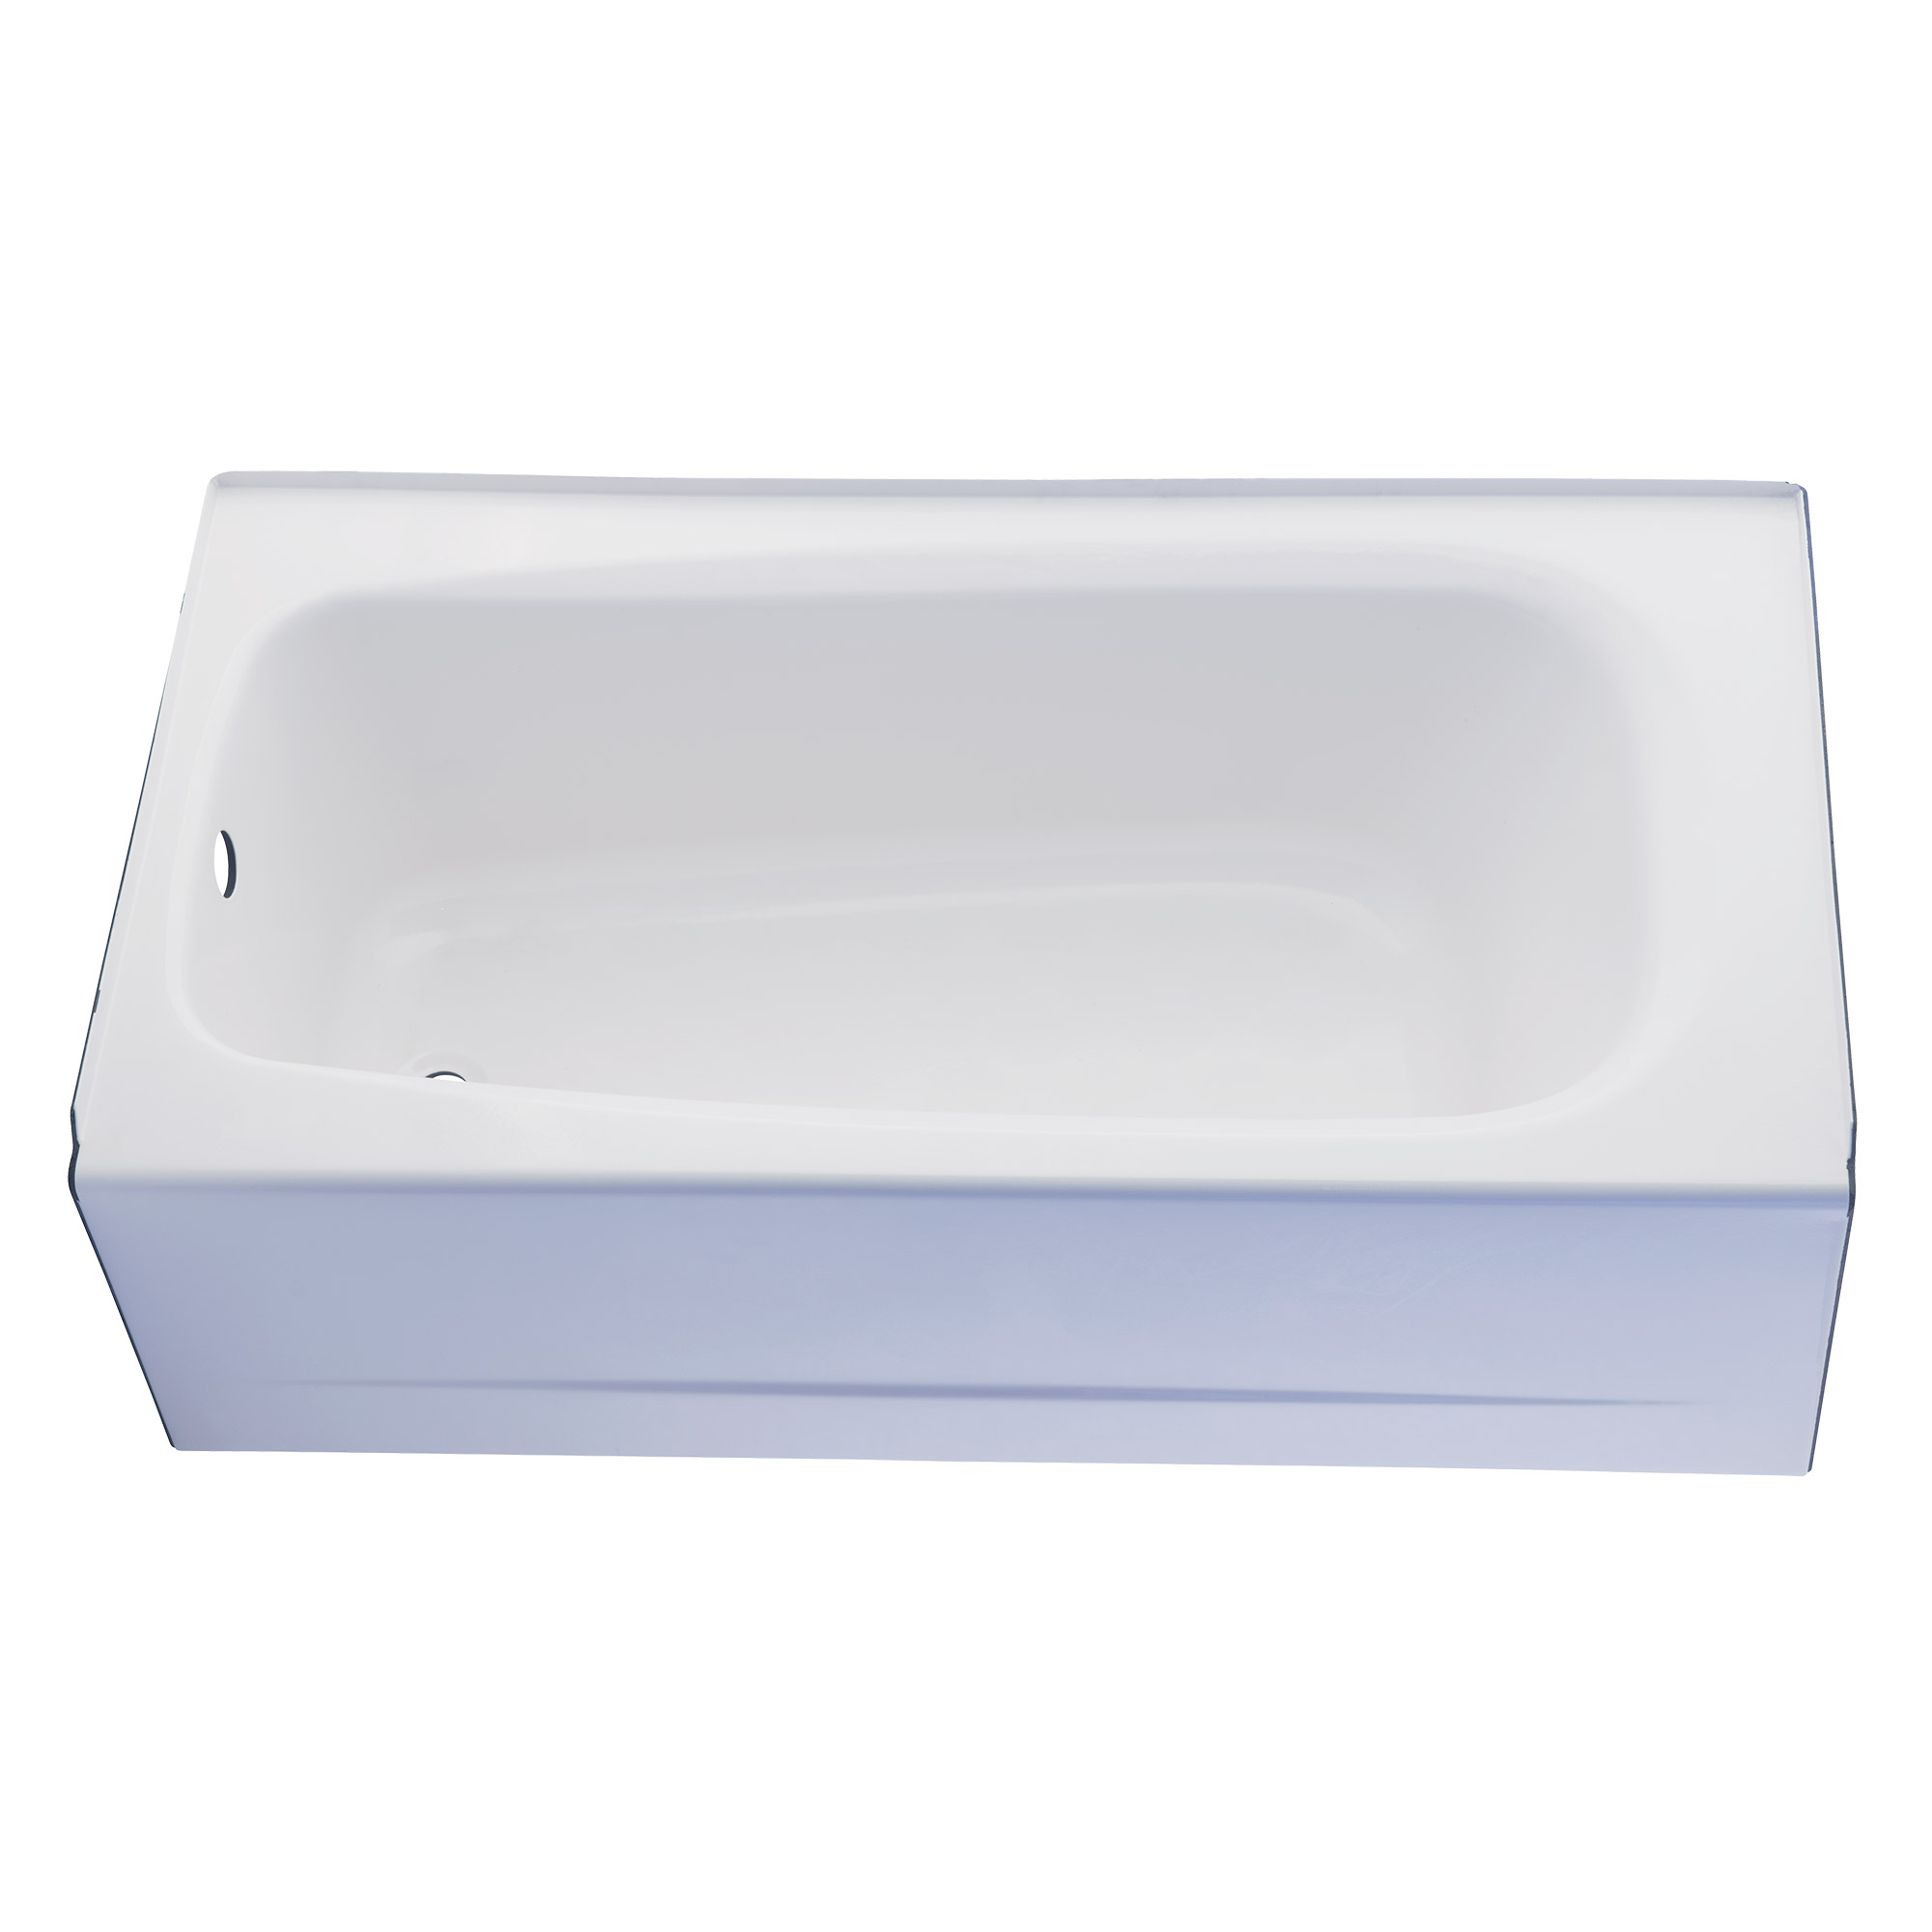 bathroom soak soaker tub tubs white x bath standard deep inch evolution everclean air by b american massage